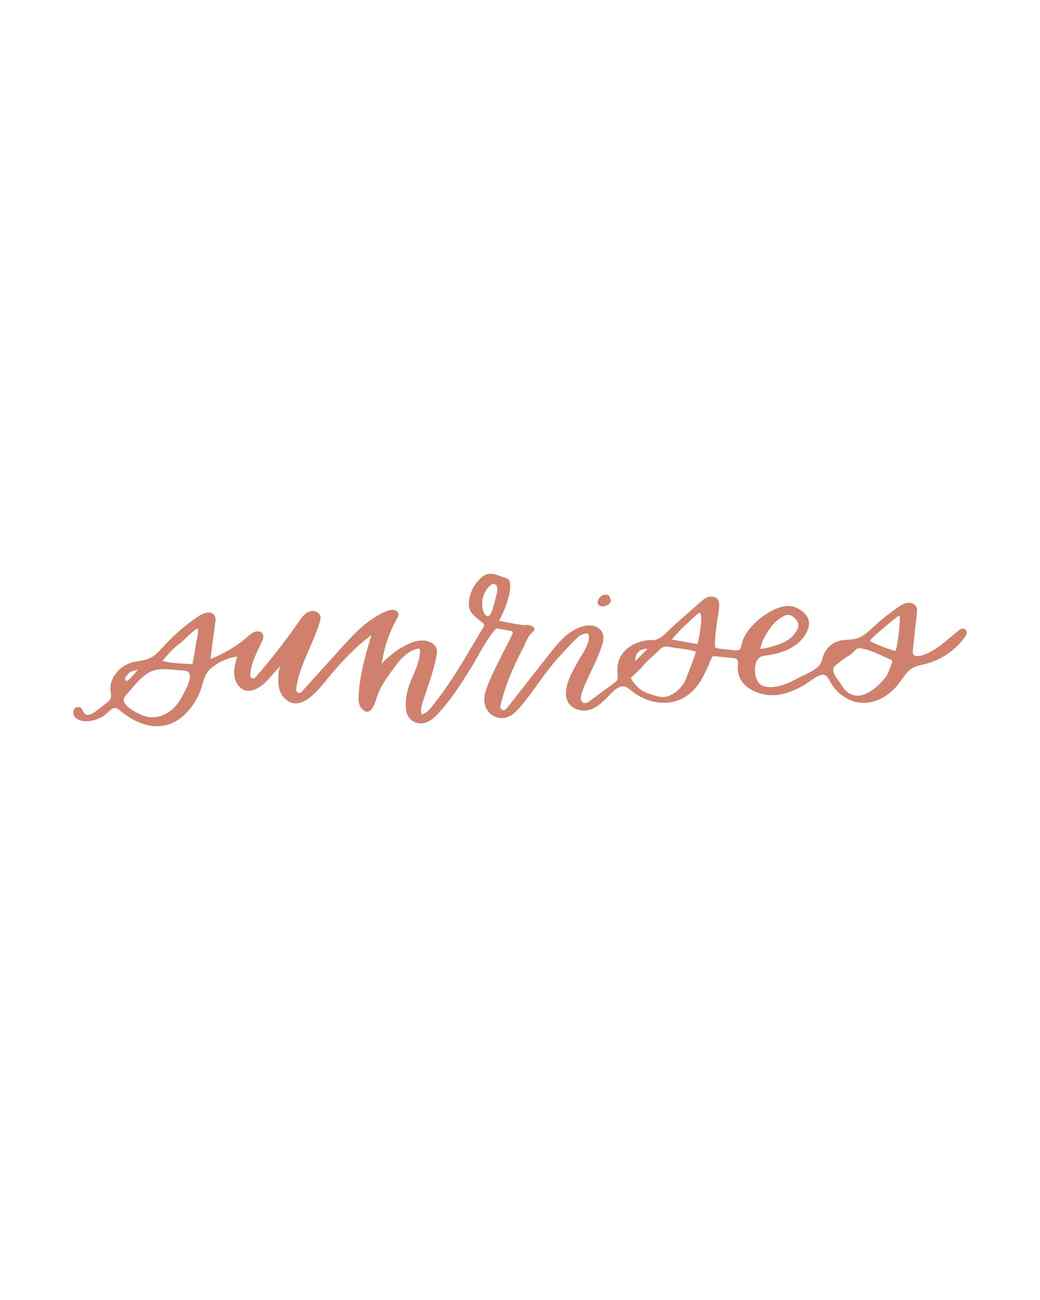 """sunrises"" calligraphy"